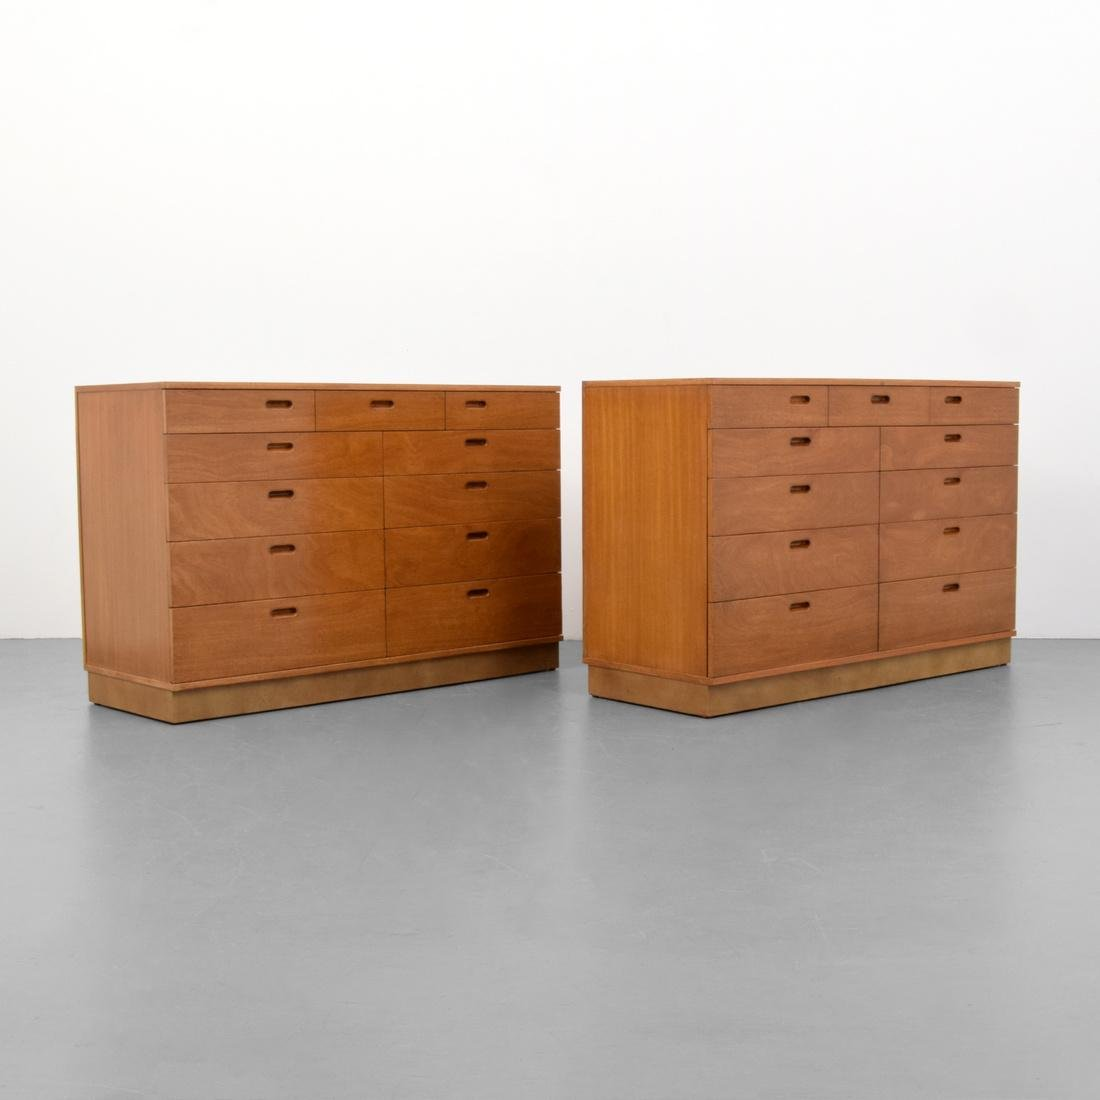 2 Edward Wormley Cabinets